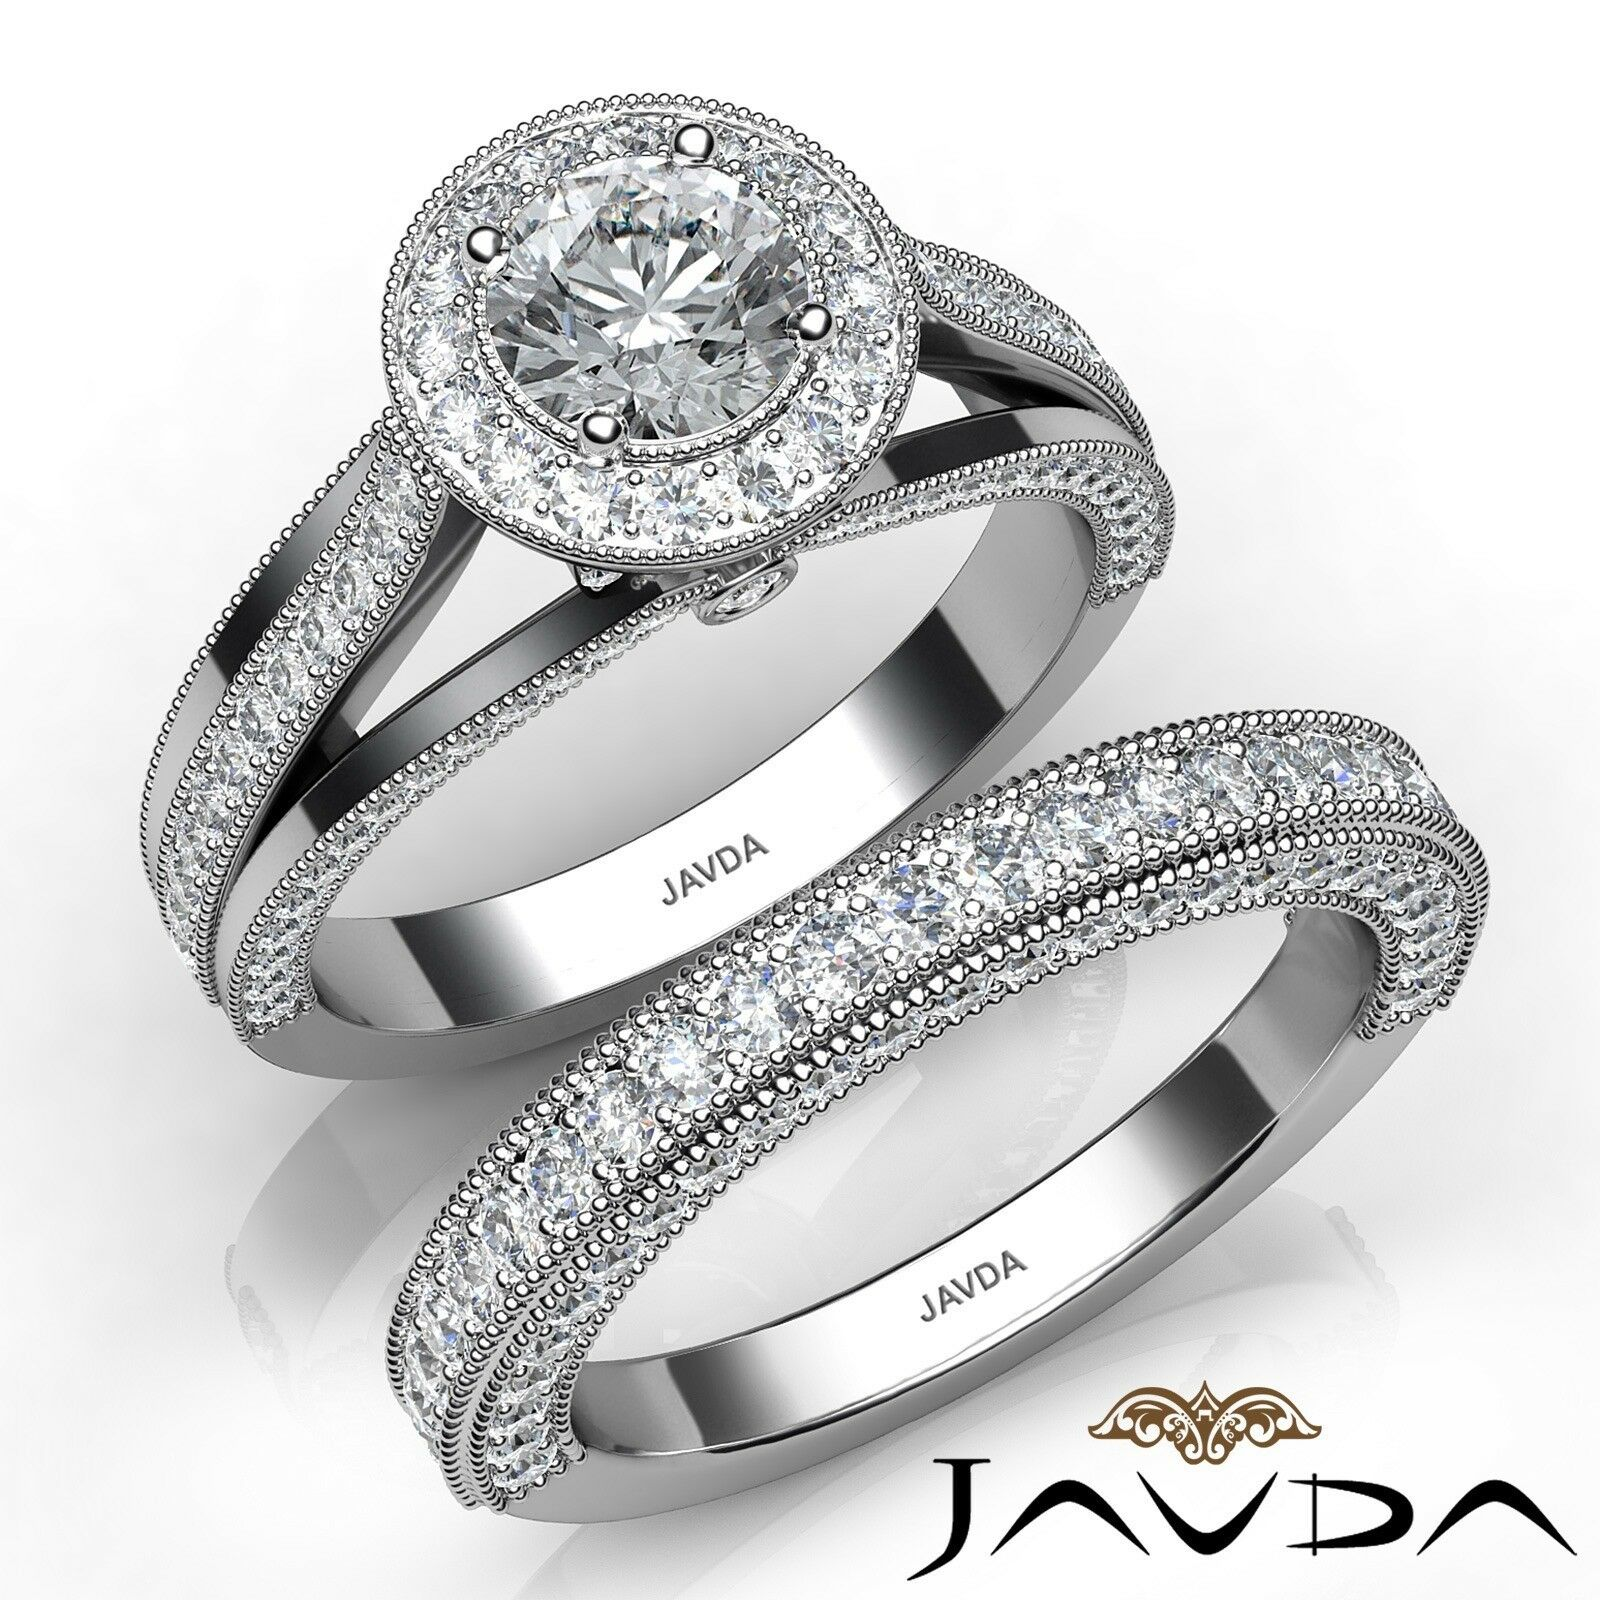 2.15ctw Milgrain Edge Bridal Set Halo Round Diamond Engagement Ring GIA F-VS1